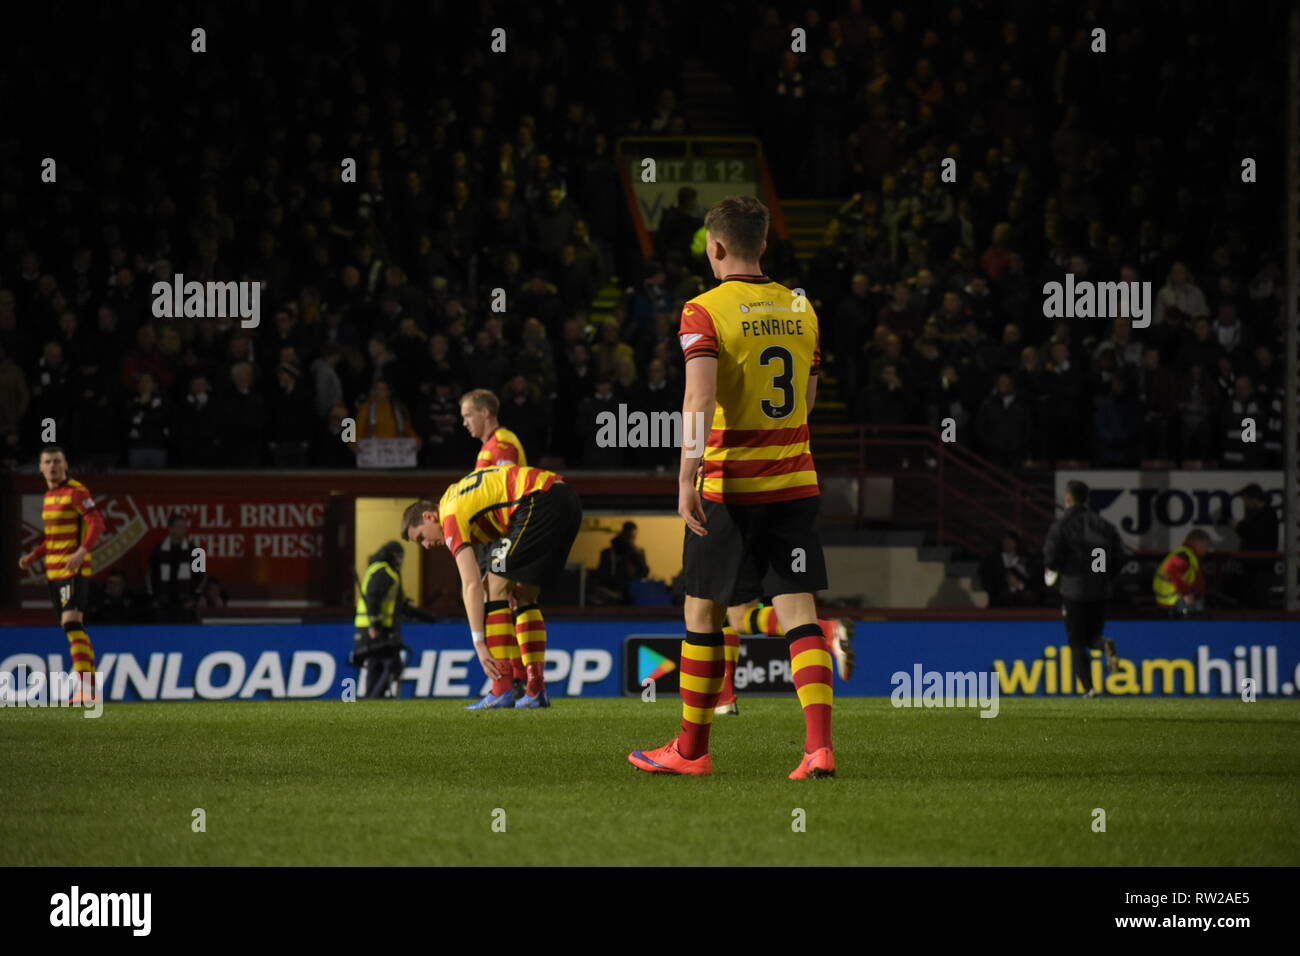 firhill, Maryhill, Glasgow, Scotland 4th march 2019 no 3 moves up pich for Partick Thistle corner credit: Thomas Porter/Alamy News - Stock Image